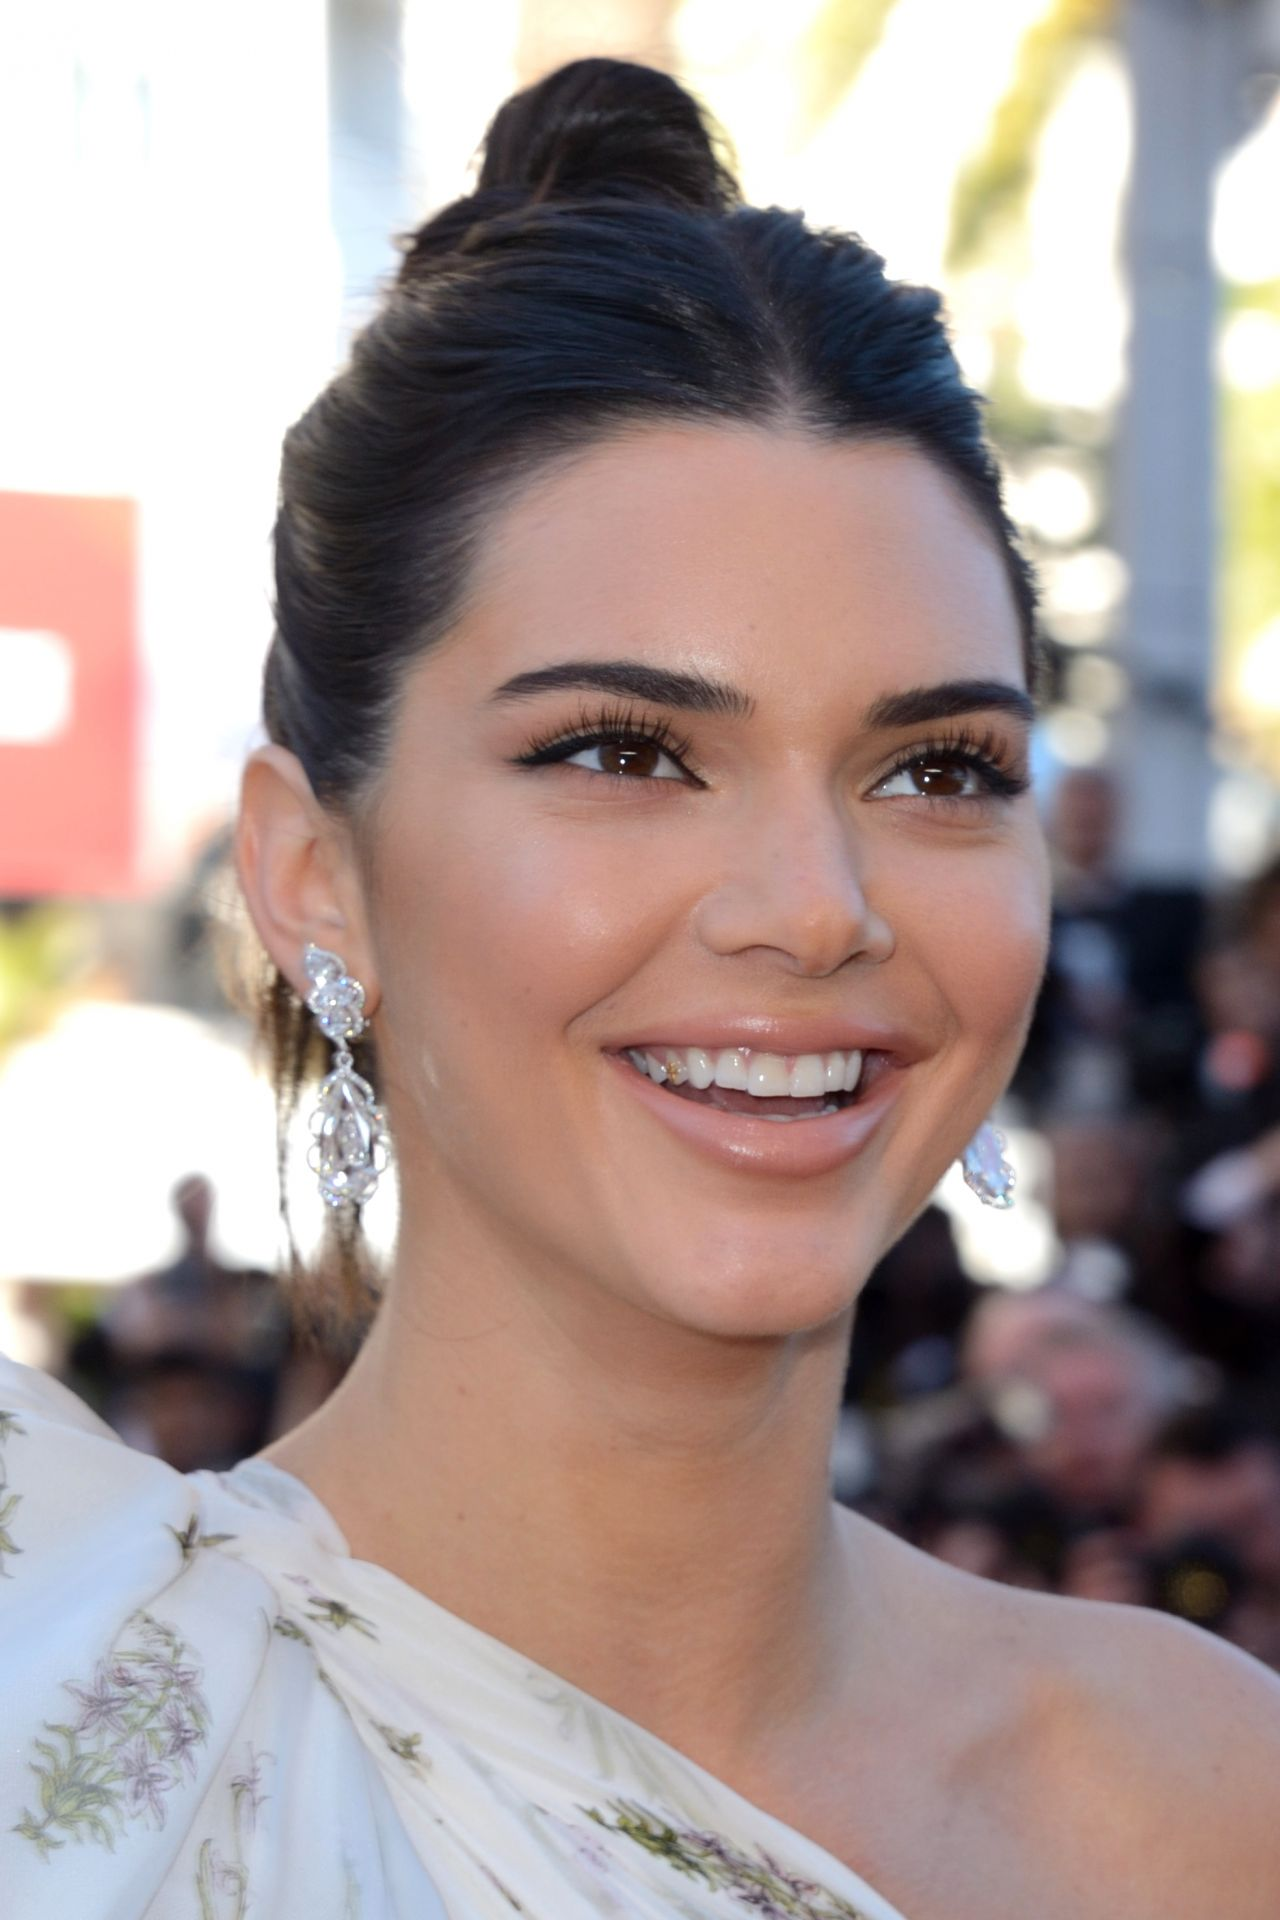 kendall jenner - photo #14